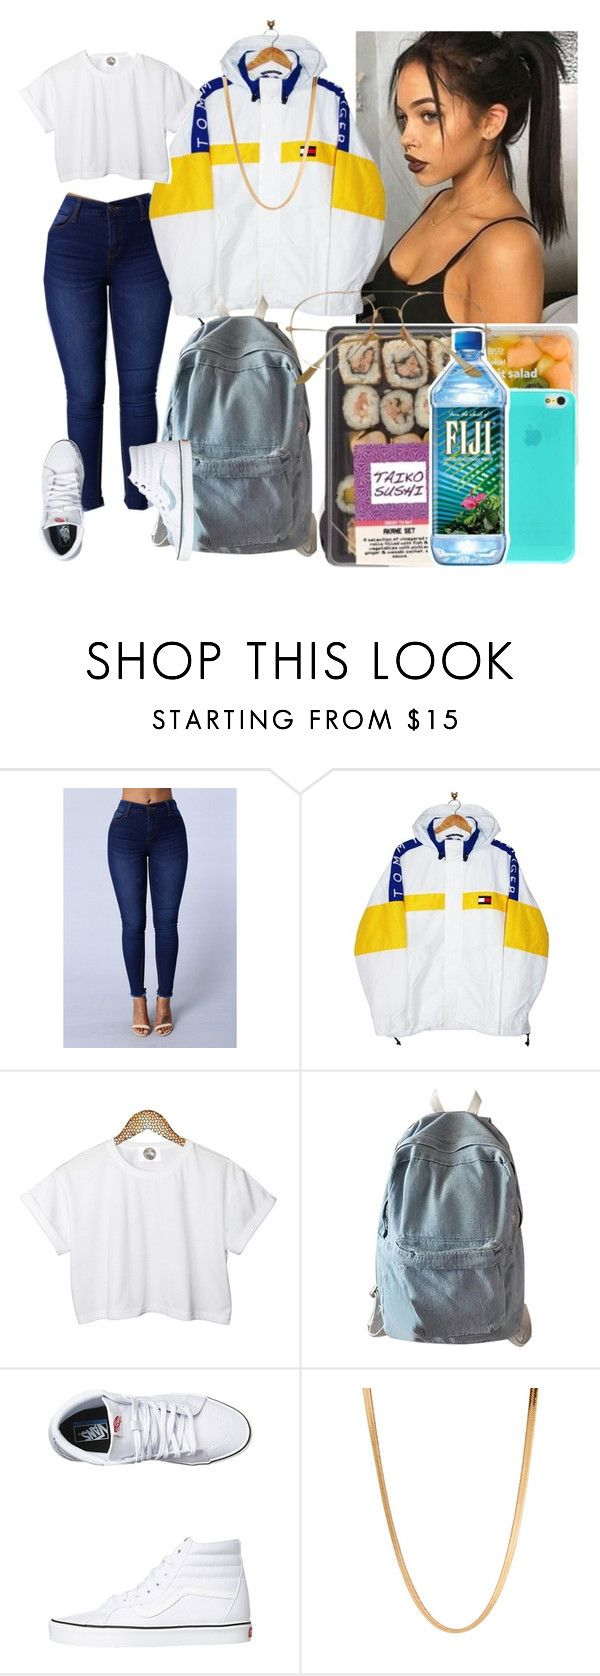 """💋"" by sheawkward ❤ liked on Polyvore featuring Tommy Hilfiger, CC, WithChic, Vans and ASOS"